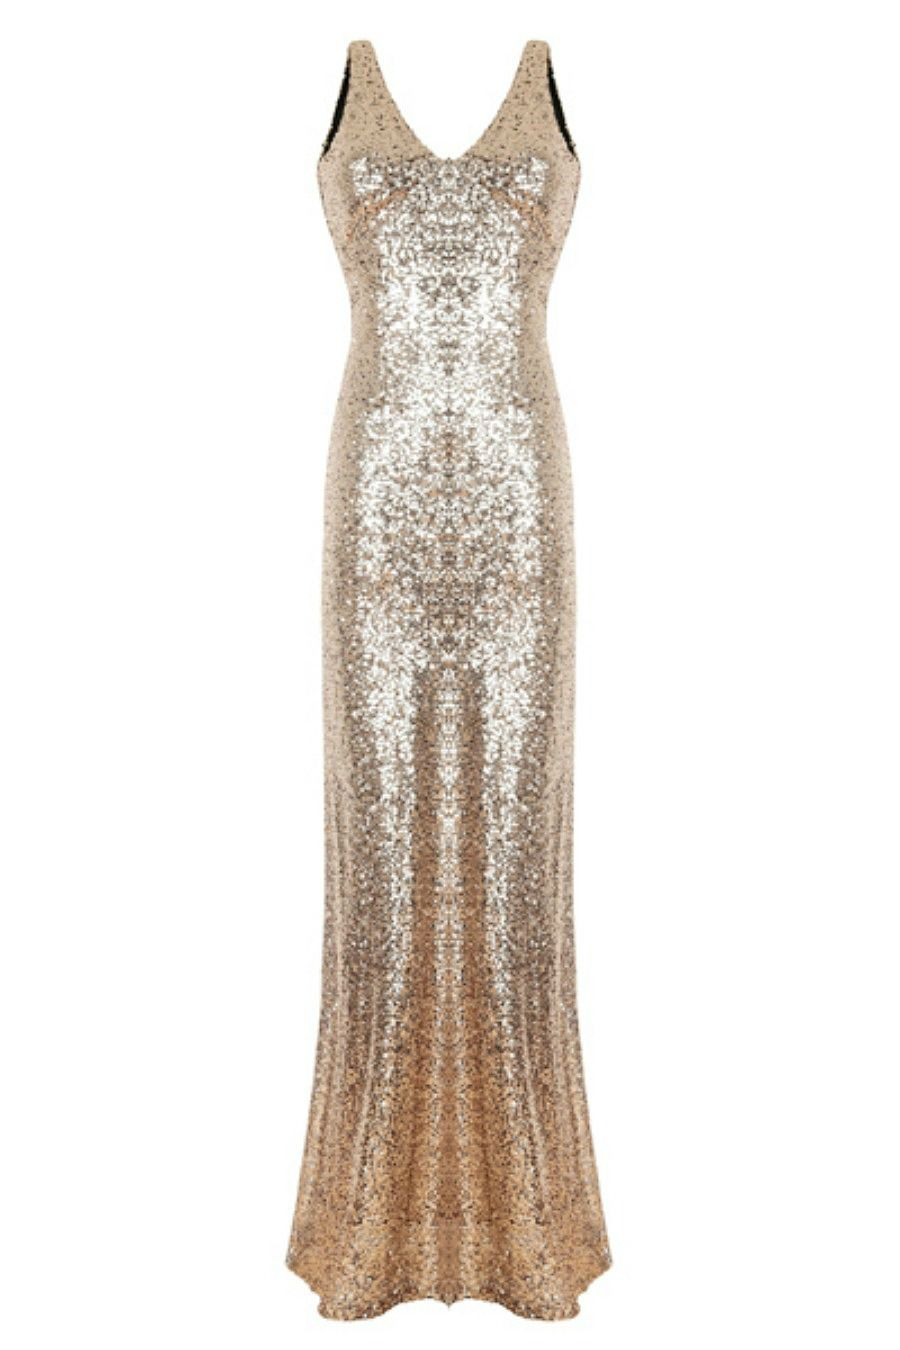 Are you still fishing for your perfect prom dress take a look at